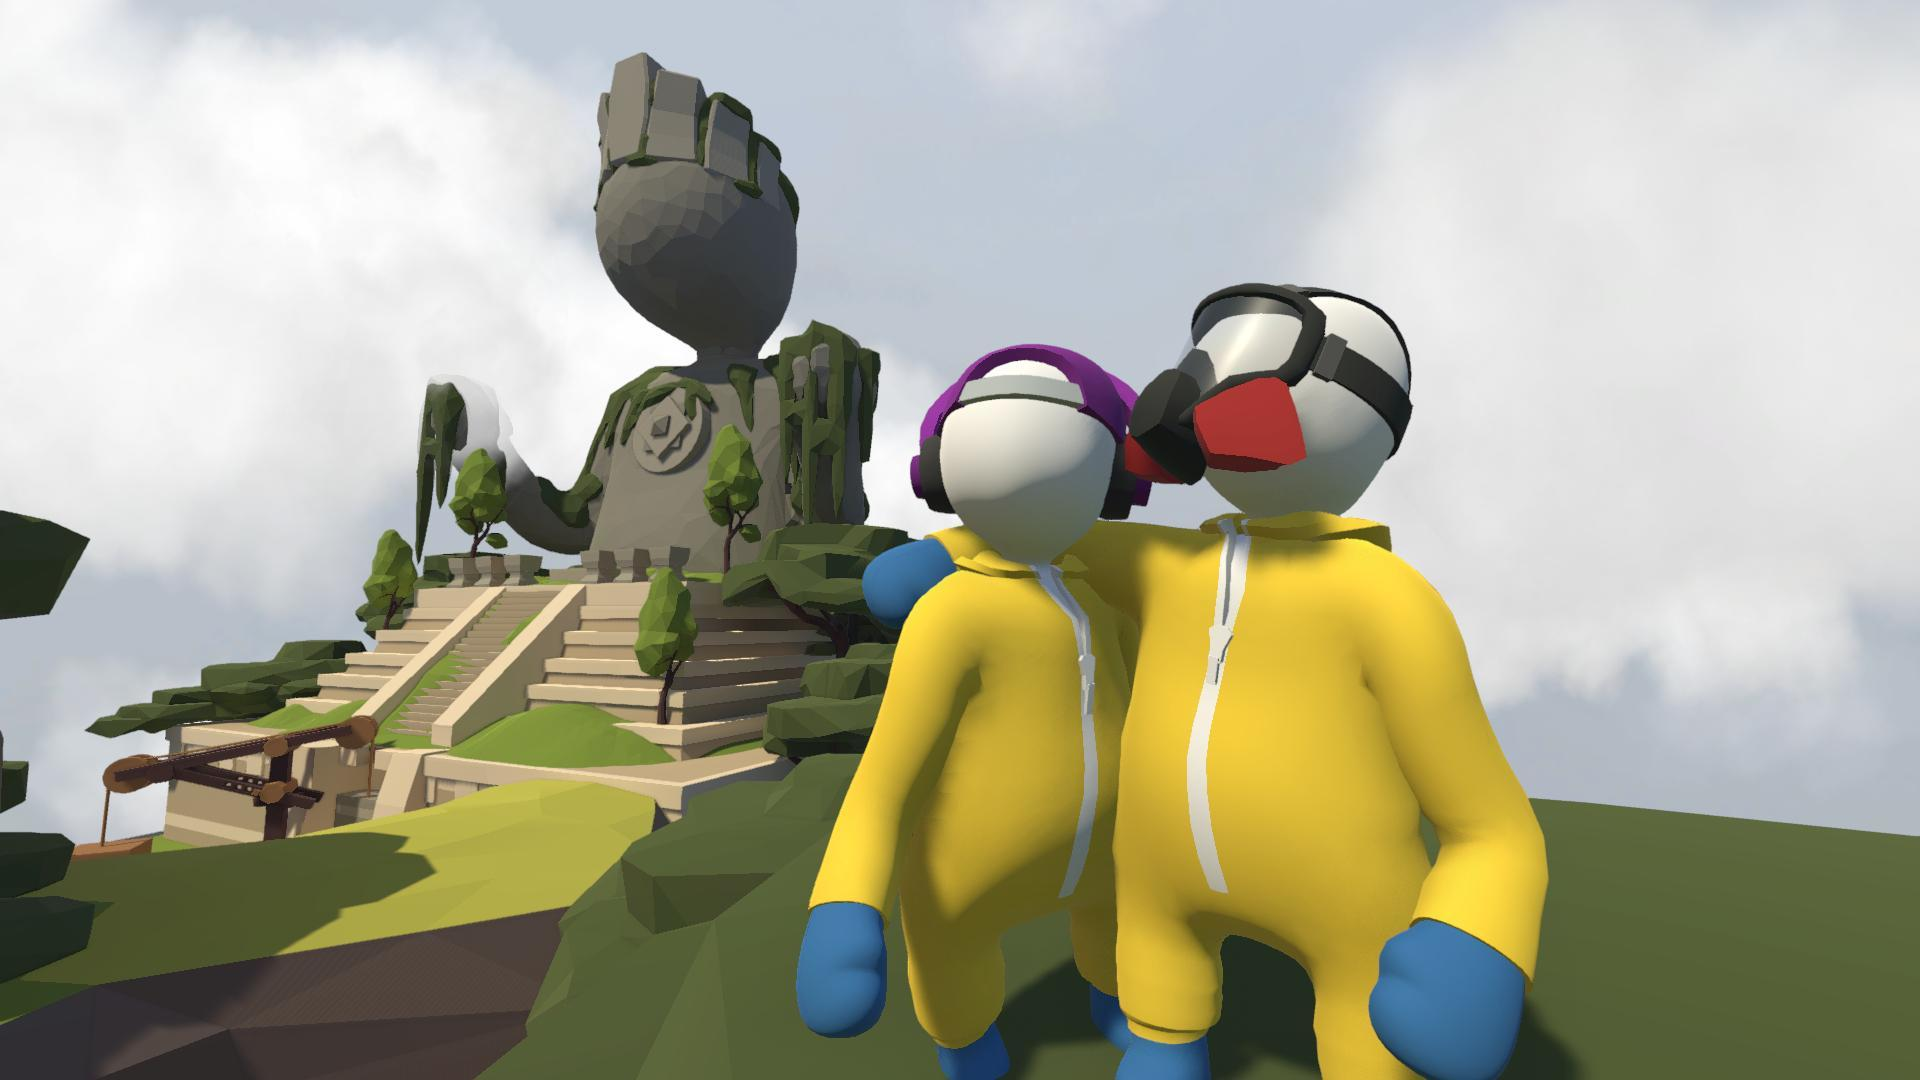 Co Optimus News Human Fall Flat Adds Options For Local Op On 2 Way Switch Animation We Reviewed Before It Made Its To Giving A 4 5 Both And The Game Itself Saying That Even If You Fail